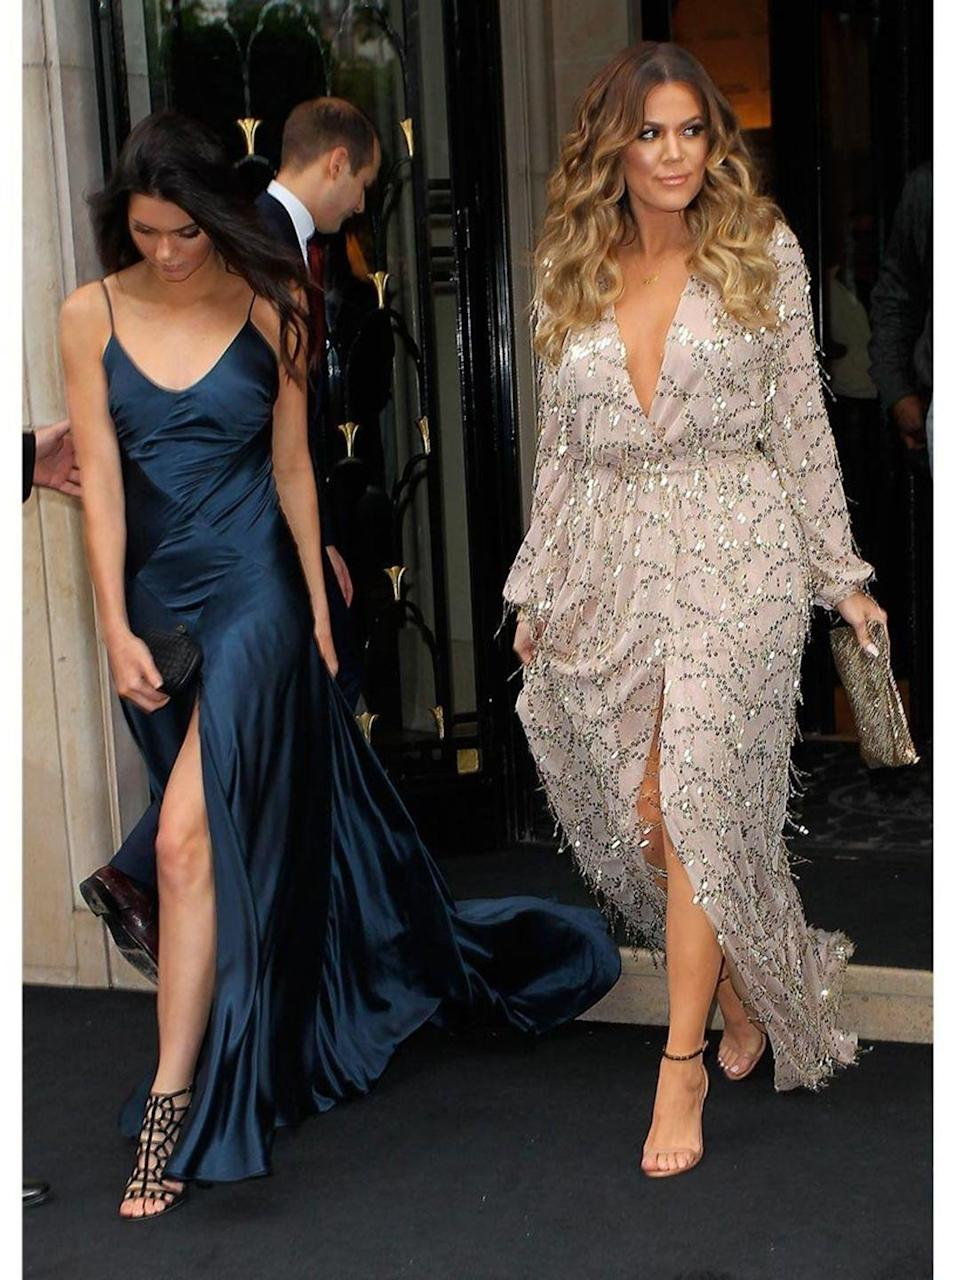 """<p>With Khloe Kardashian, leaving the Four Seasons George V Hotel, Paris.</p><p><a href=""""http://www.elleuk.com/style/occasions/kim-kardashian-kanye-west-wedding-paris-pictures"""" rel=""""nofollow noopener"""" target=""""_blank"""" data-ylk=""""slk:See every pic from the Kimye wedding weekend"""" class=""""link rapid-noclick-resp"""">See every pic from the Kimye wedding weekend</a></p>"""